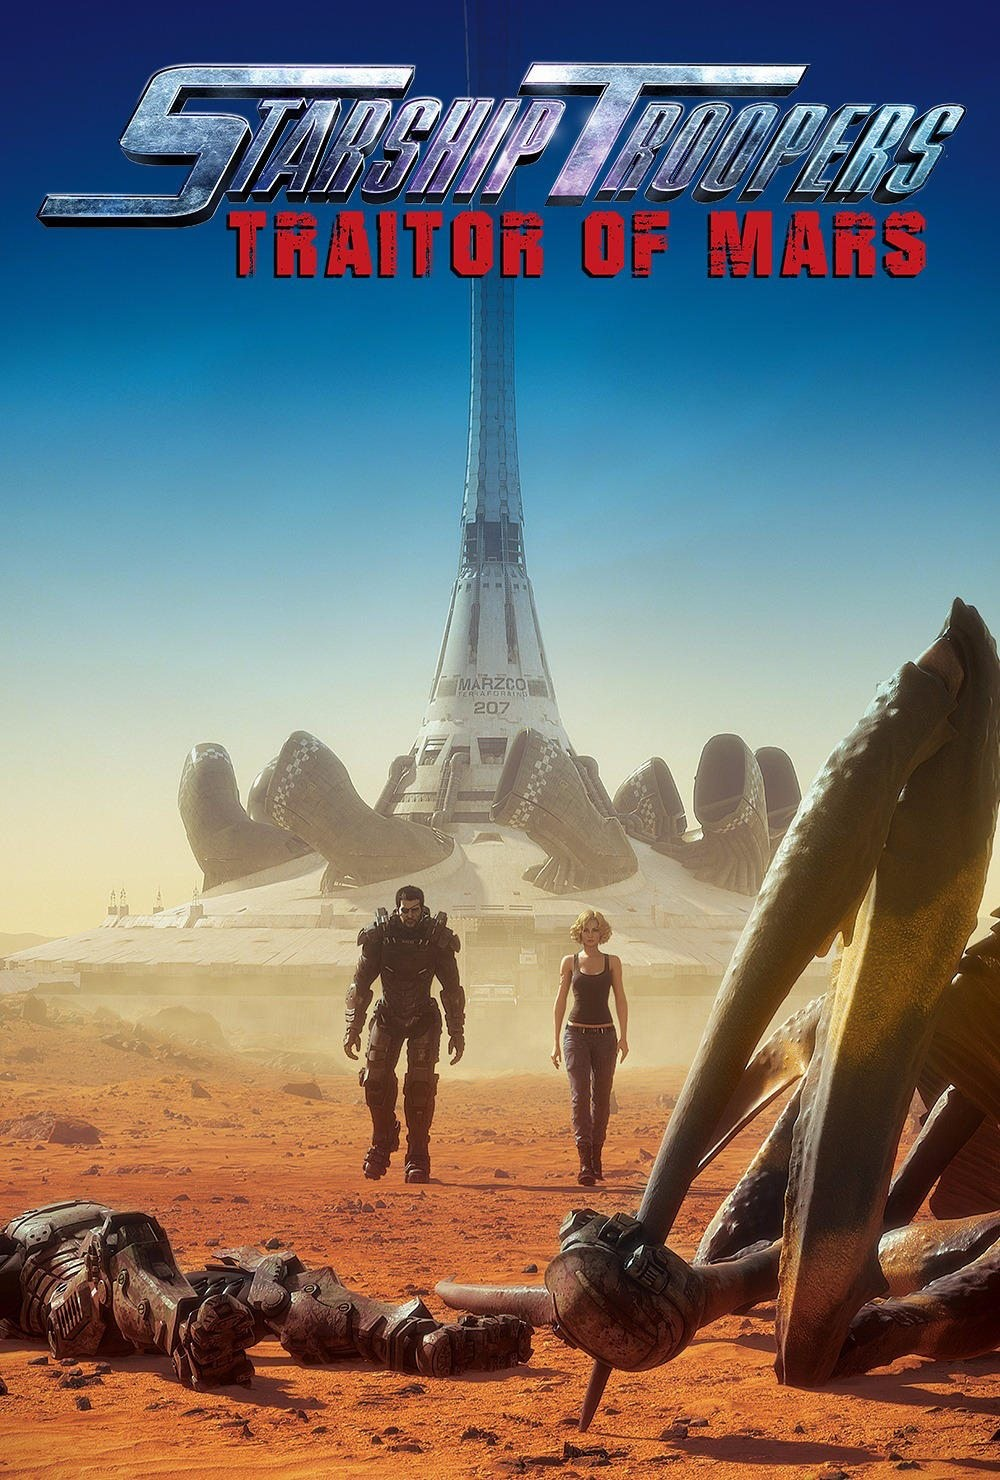 Starship-Troopers-Traitor-of-Mars-poster.jpg